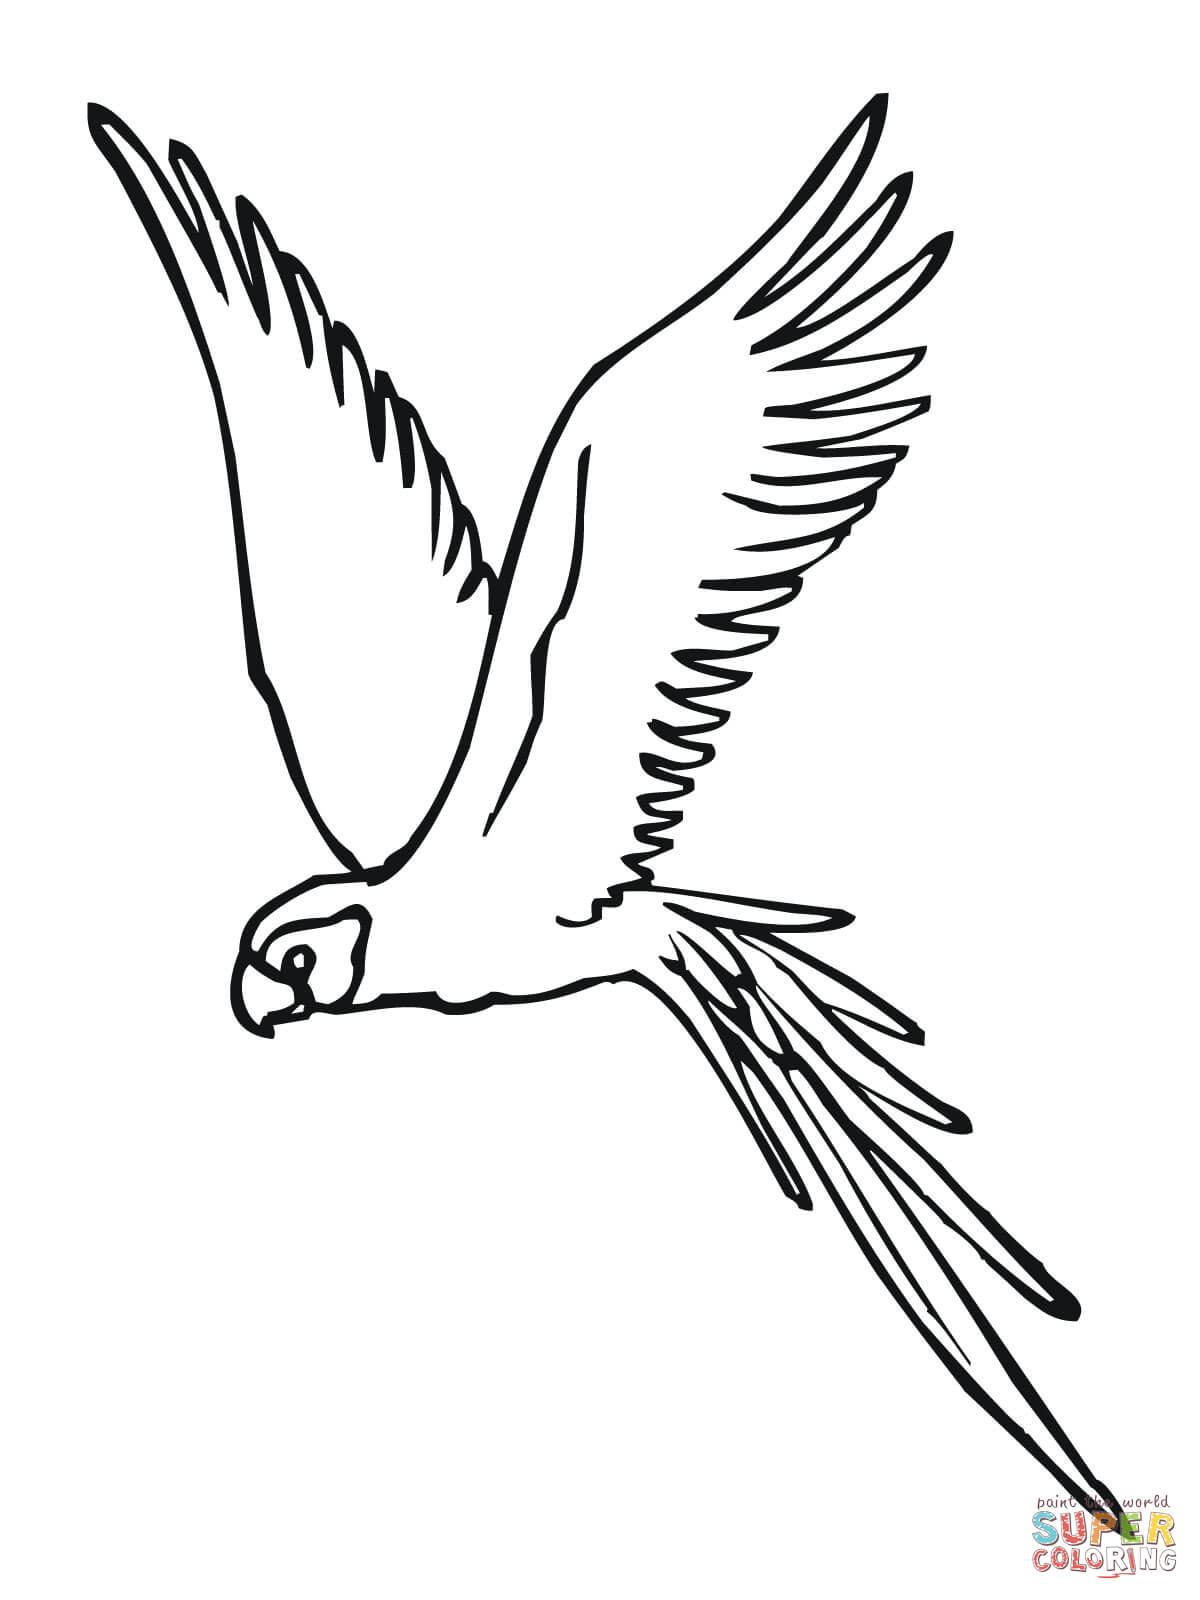 Bird Flying Out Of Cage Drawing